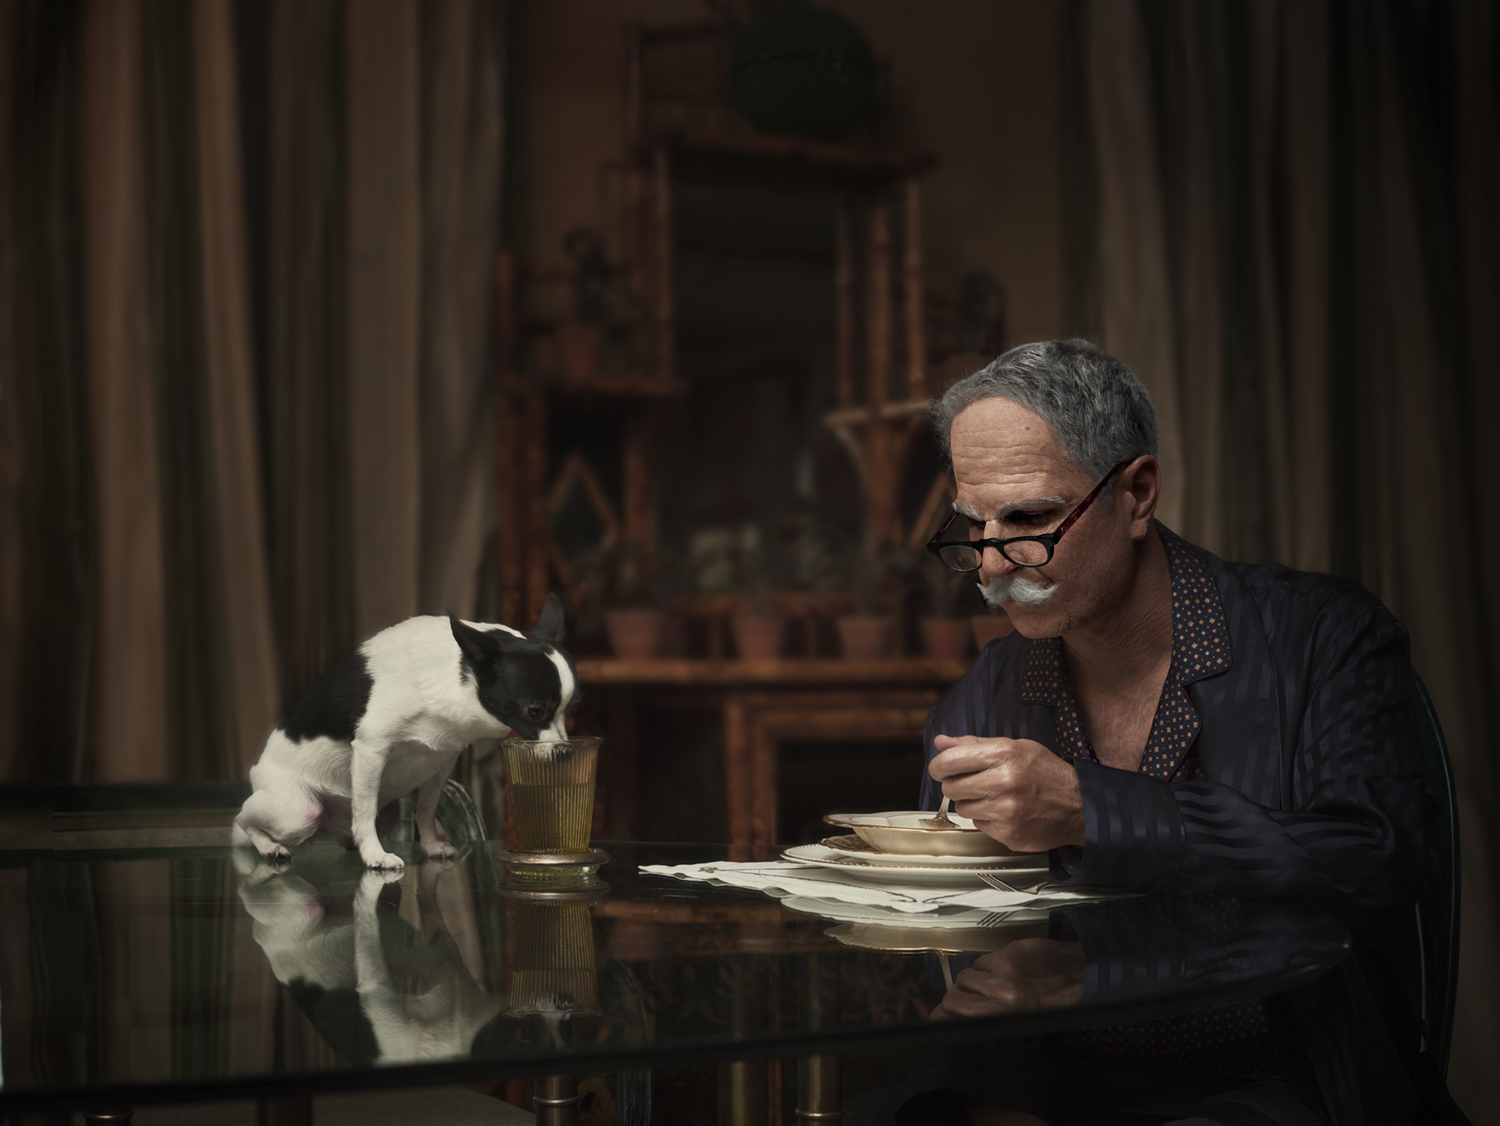 """From """"Maybe"""" which became the documentary   """"The Many Sad Fates of Mr. Toledano."""" Old Phil with dog. © Phillip Toledano"""